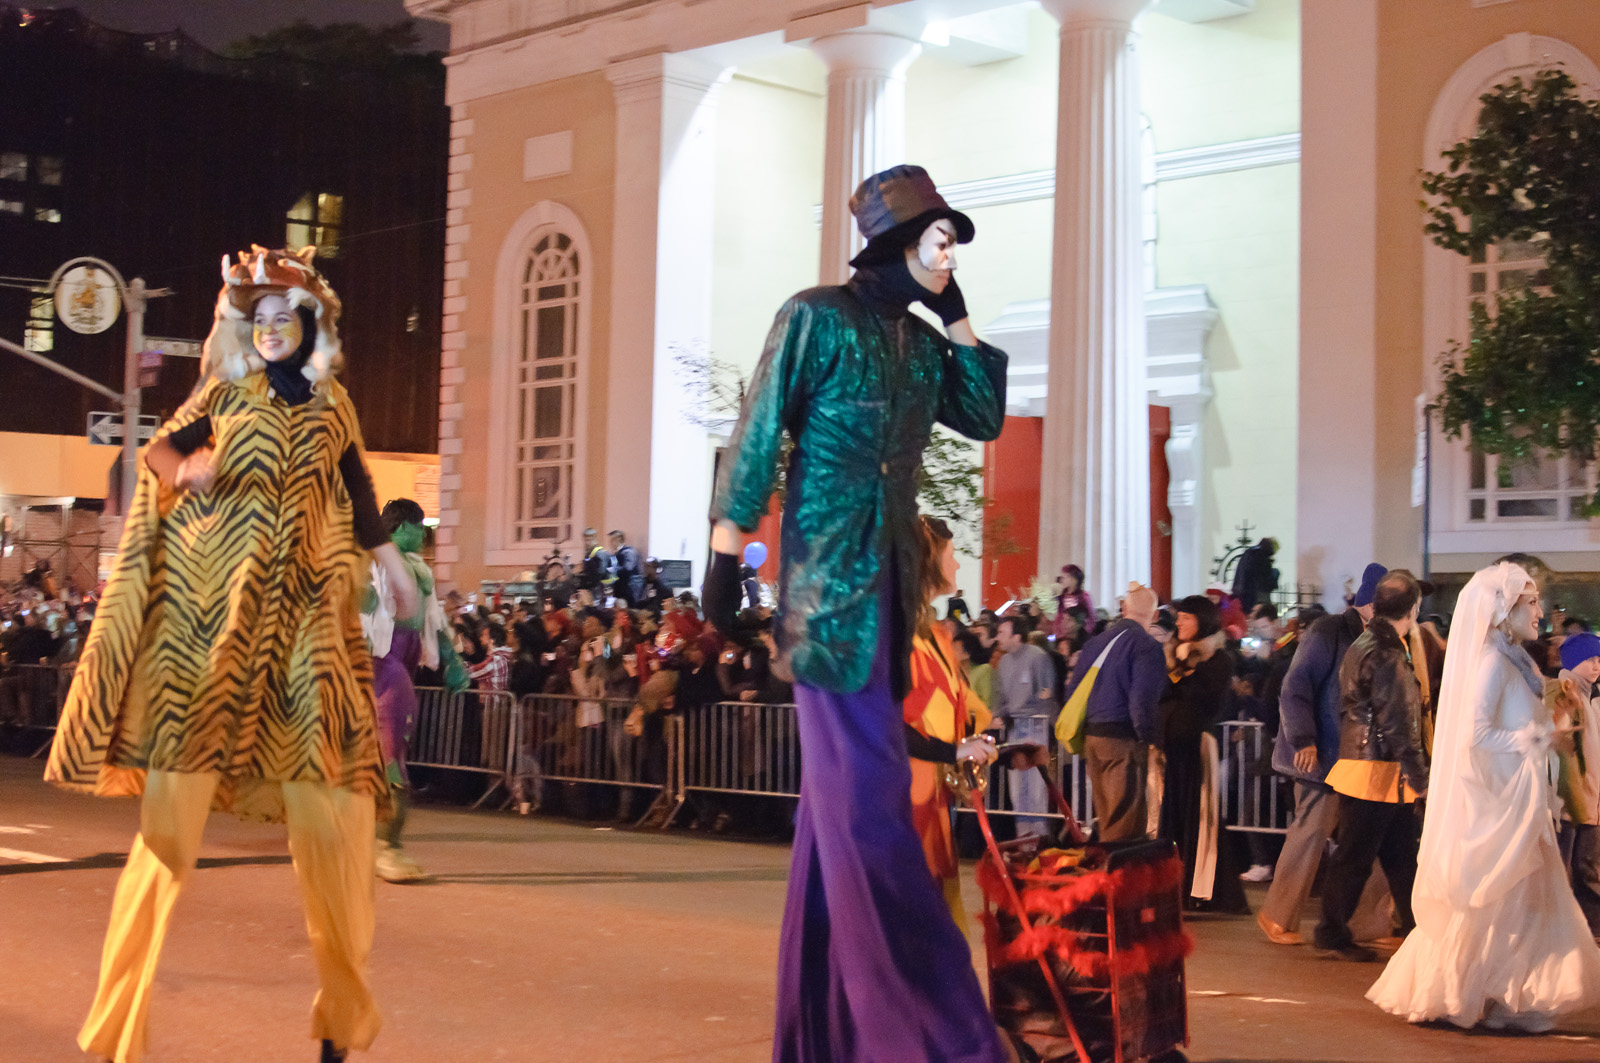 Things To Do For Halloween In Nyc | 9 Things To Do On Halloween In New York City